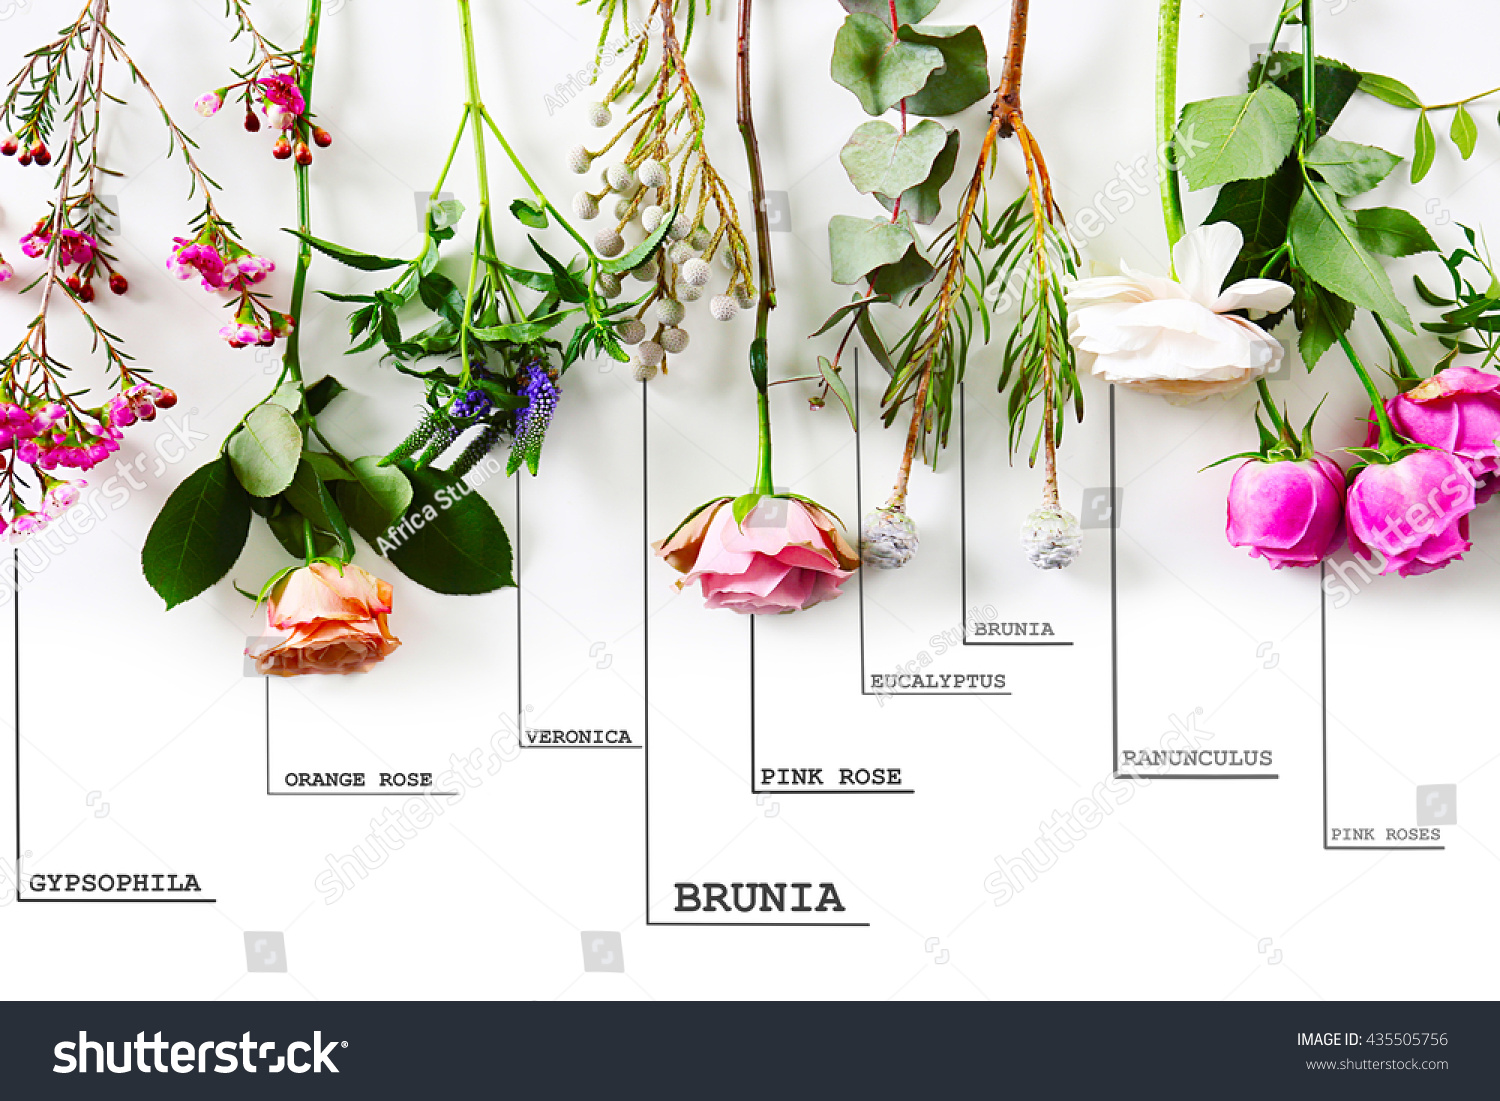 Beautiful Various Flowers Names On White Stock Photo Royalty Free